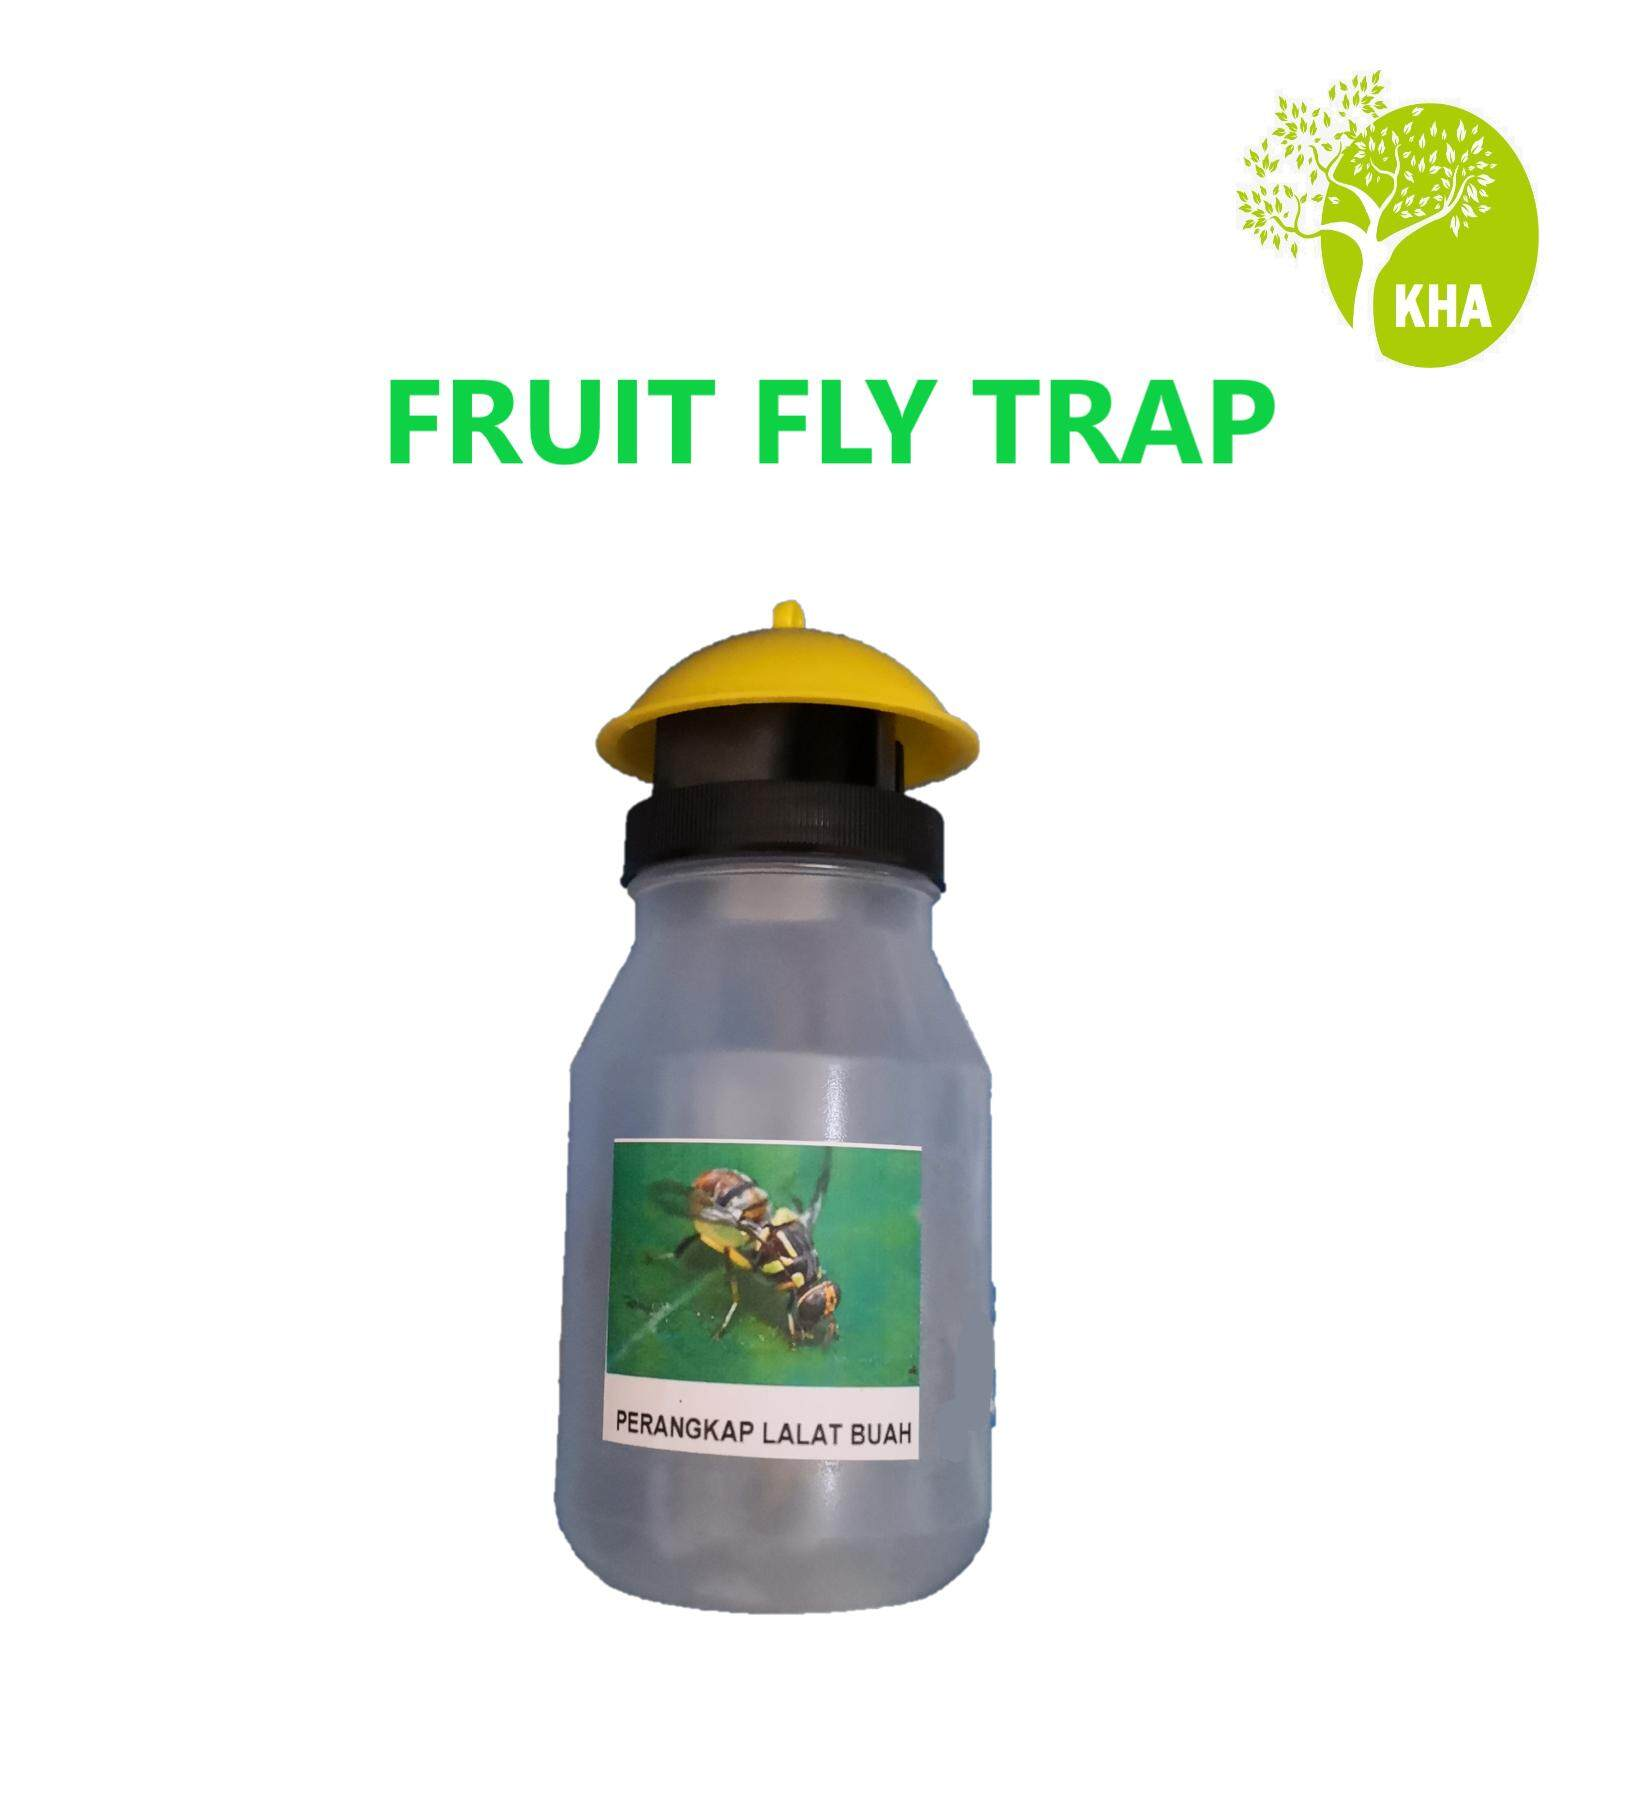 Fruit Fly Trap + 1 free lure (Organic Pest Control- Kill Fruit Fly, Protect Your Crops and Farms)